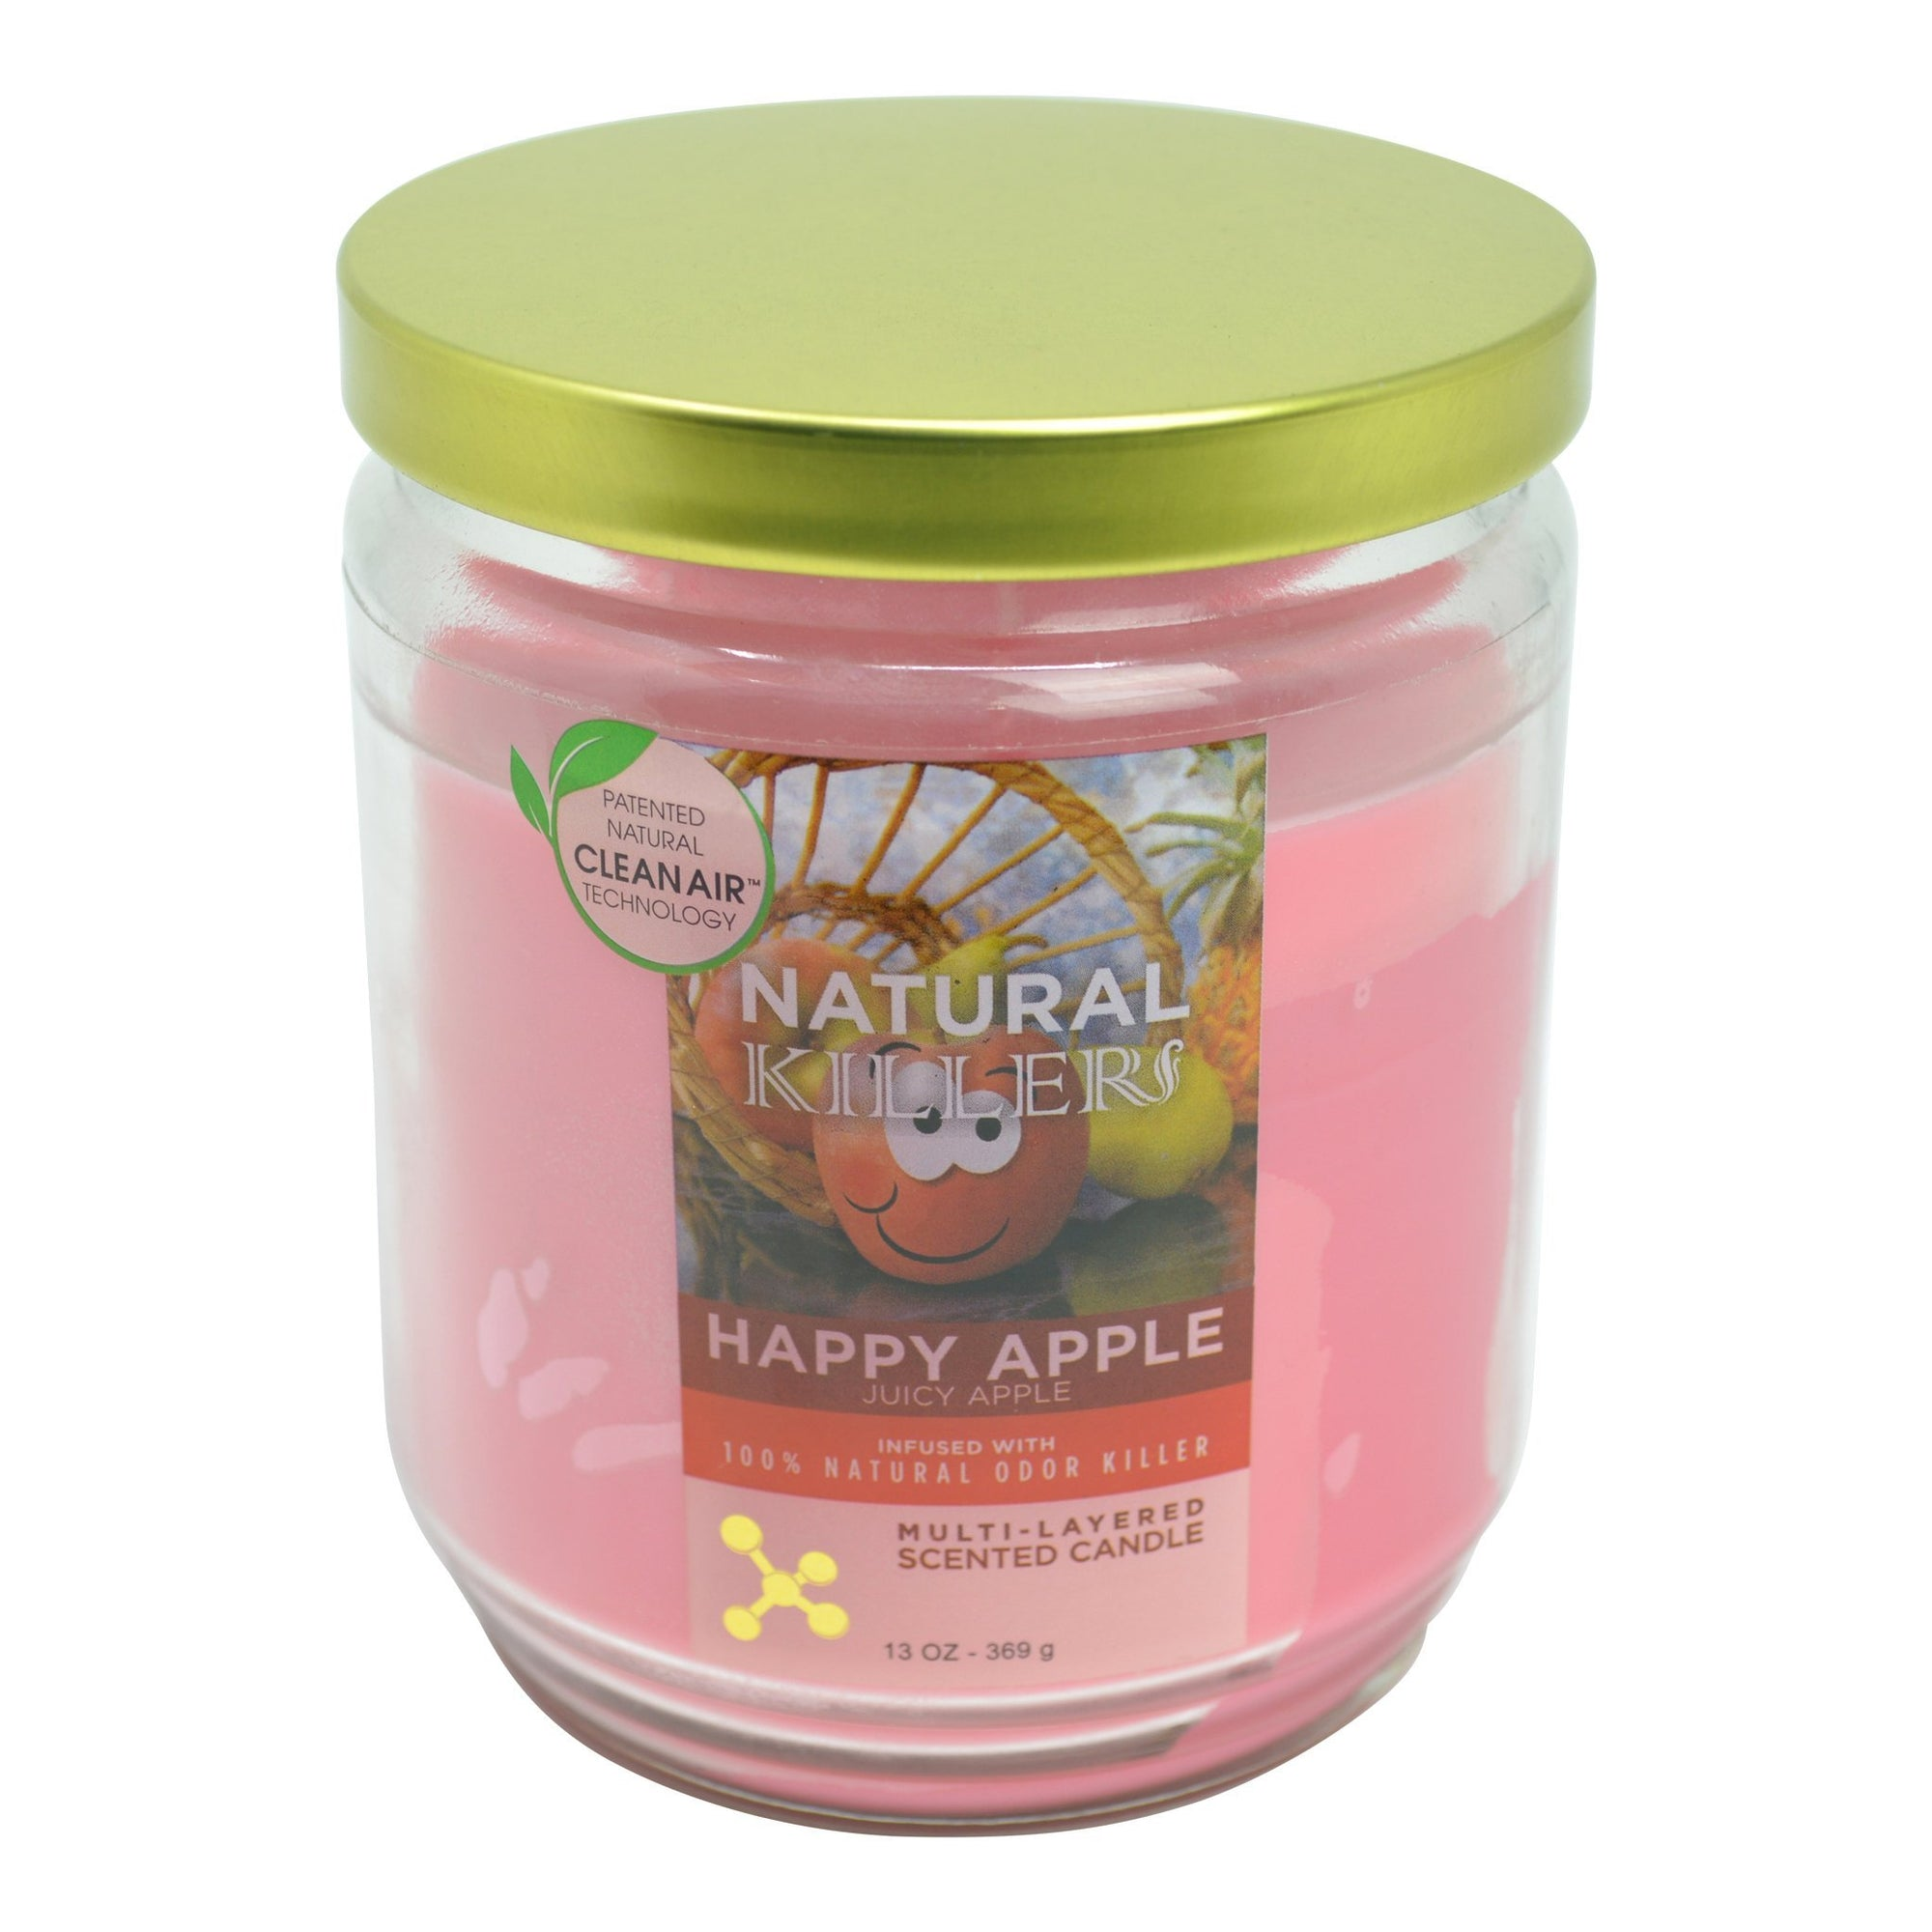 Full shot of 4.5 inch Natural Killer pink deodorizer candle in glass jar golden lid smiling apple design